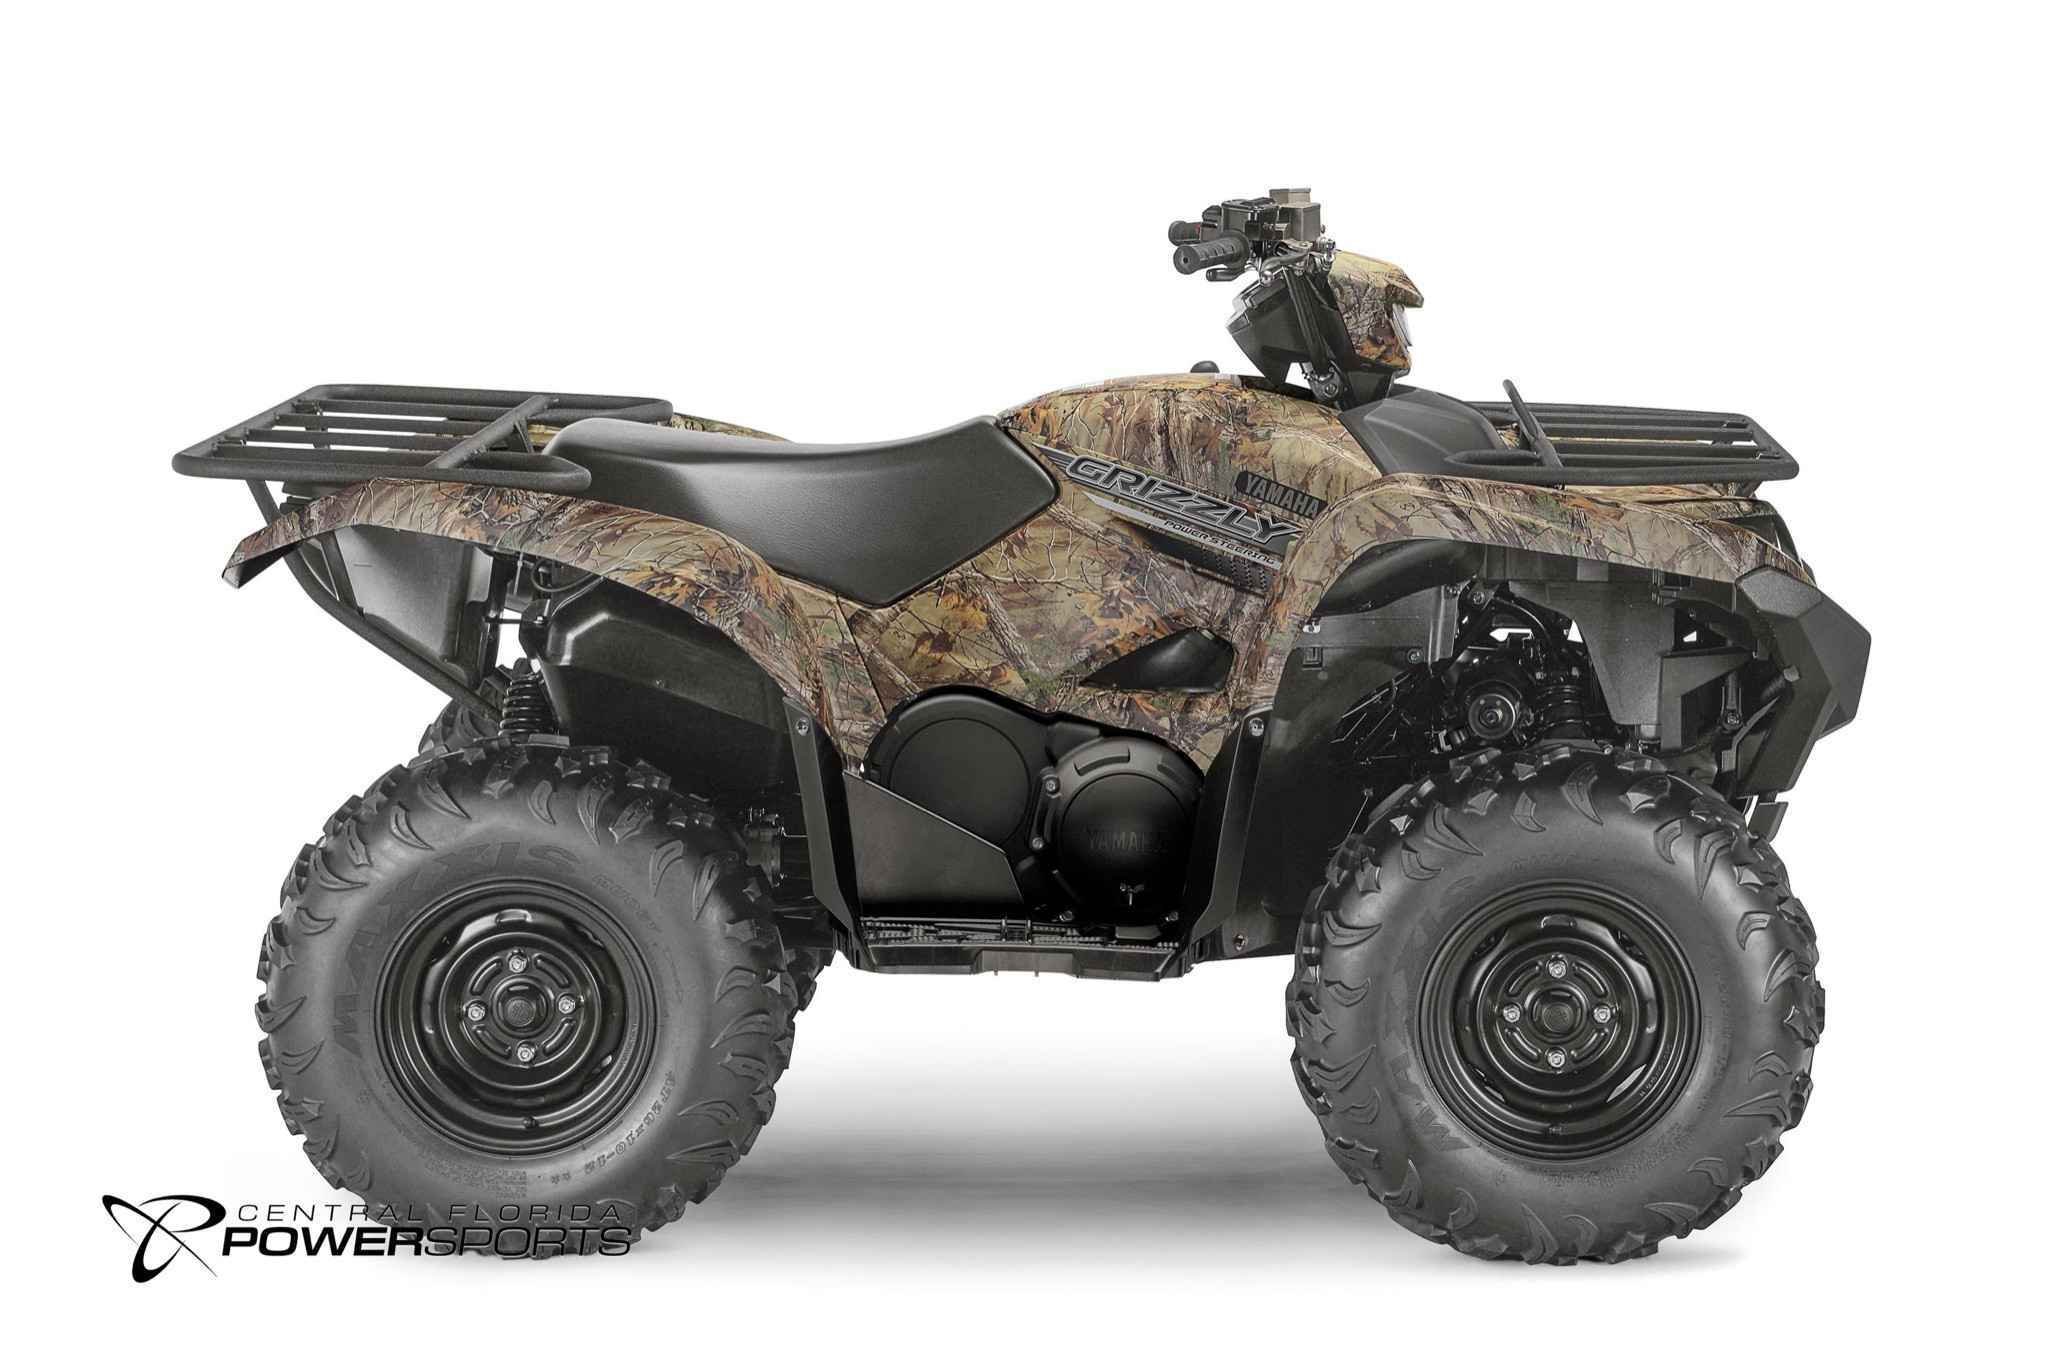 2017 Yamaha Grizzly >> New 2017 Yamaha Grizzly 700 Eps Atvs For Sale In Florida On Atvtrades Com